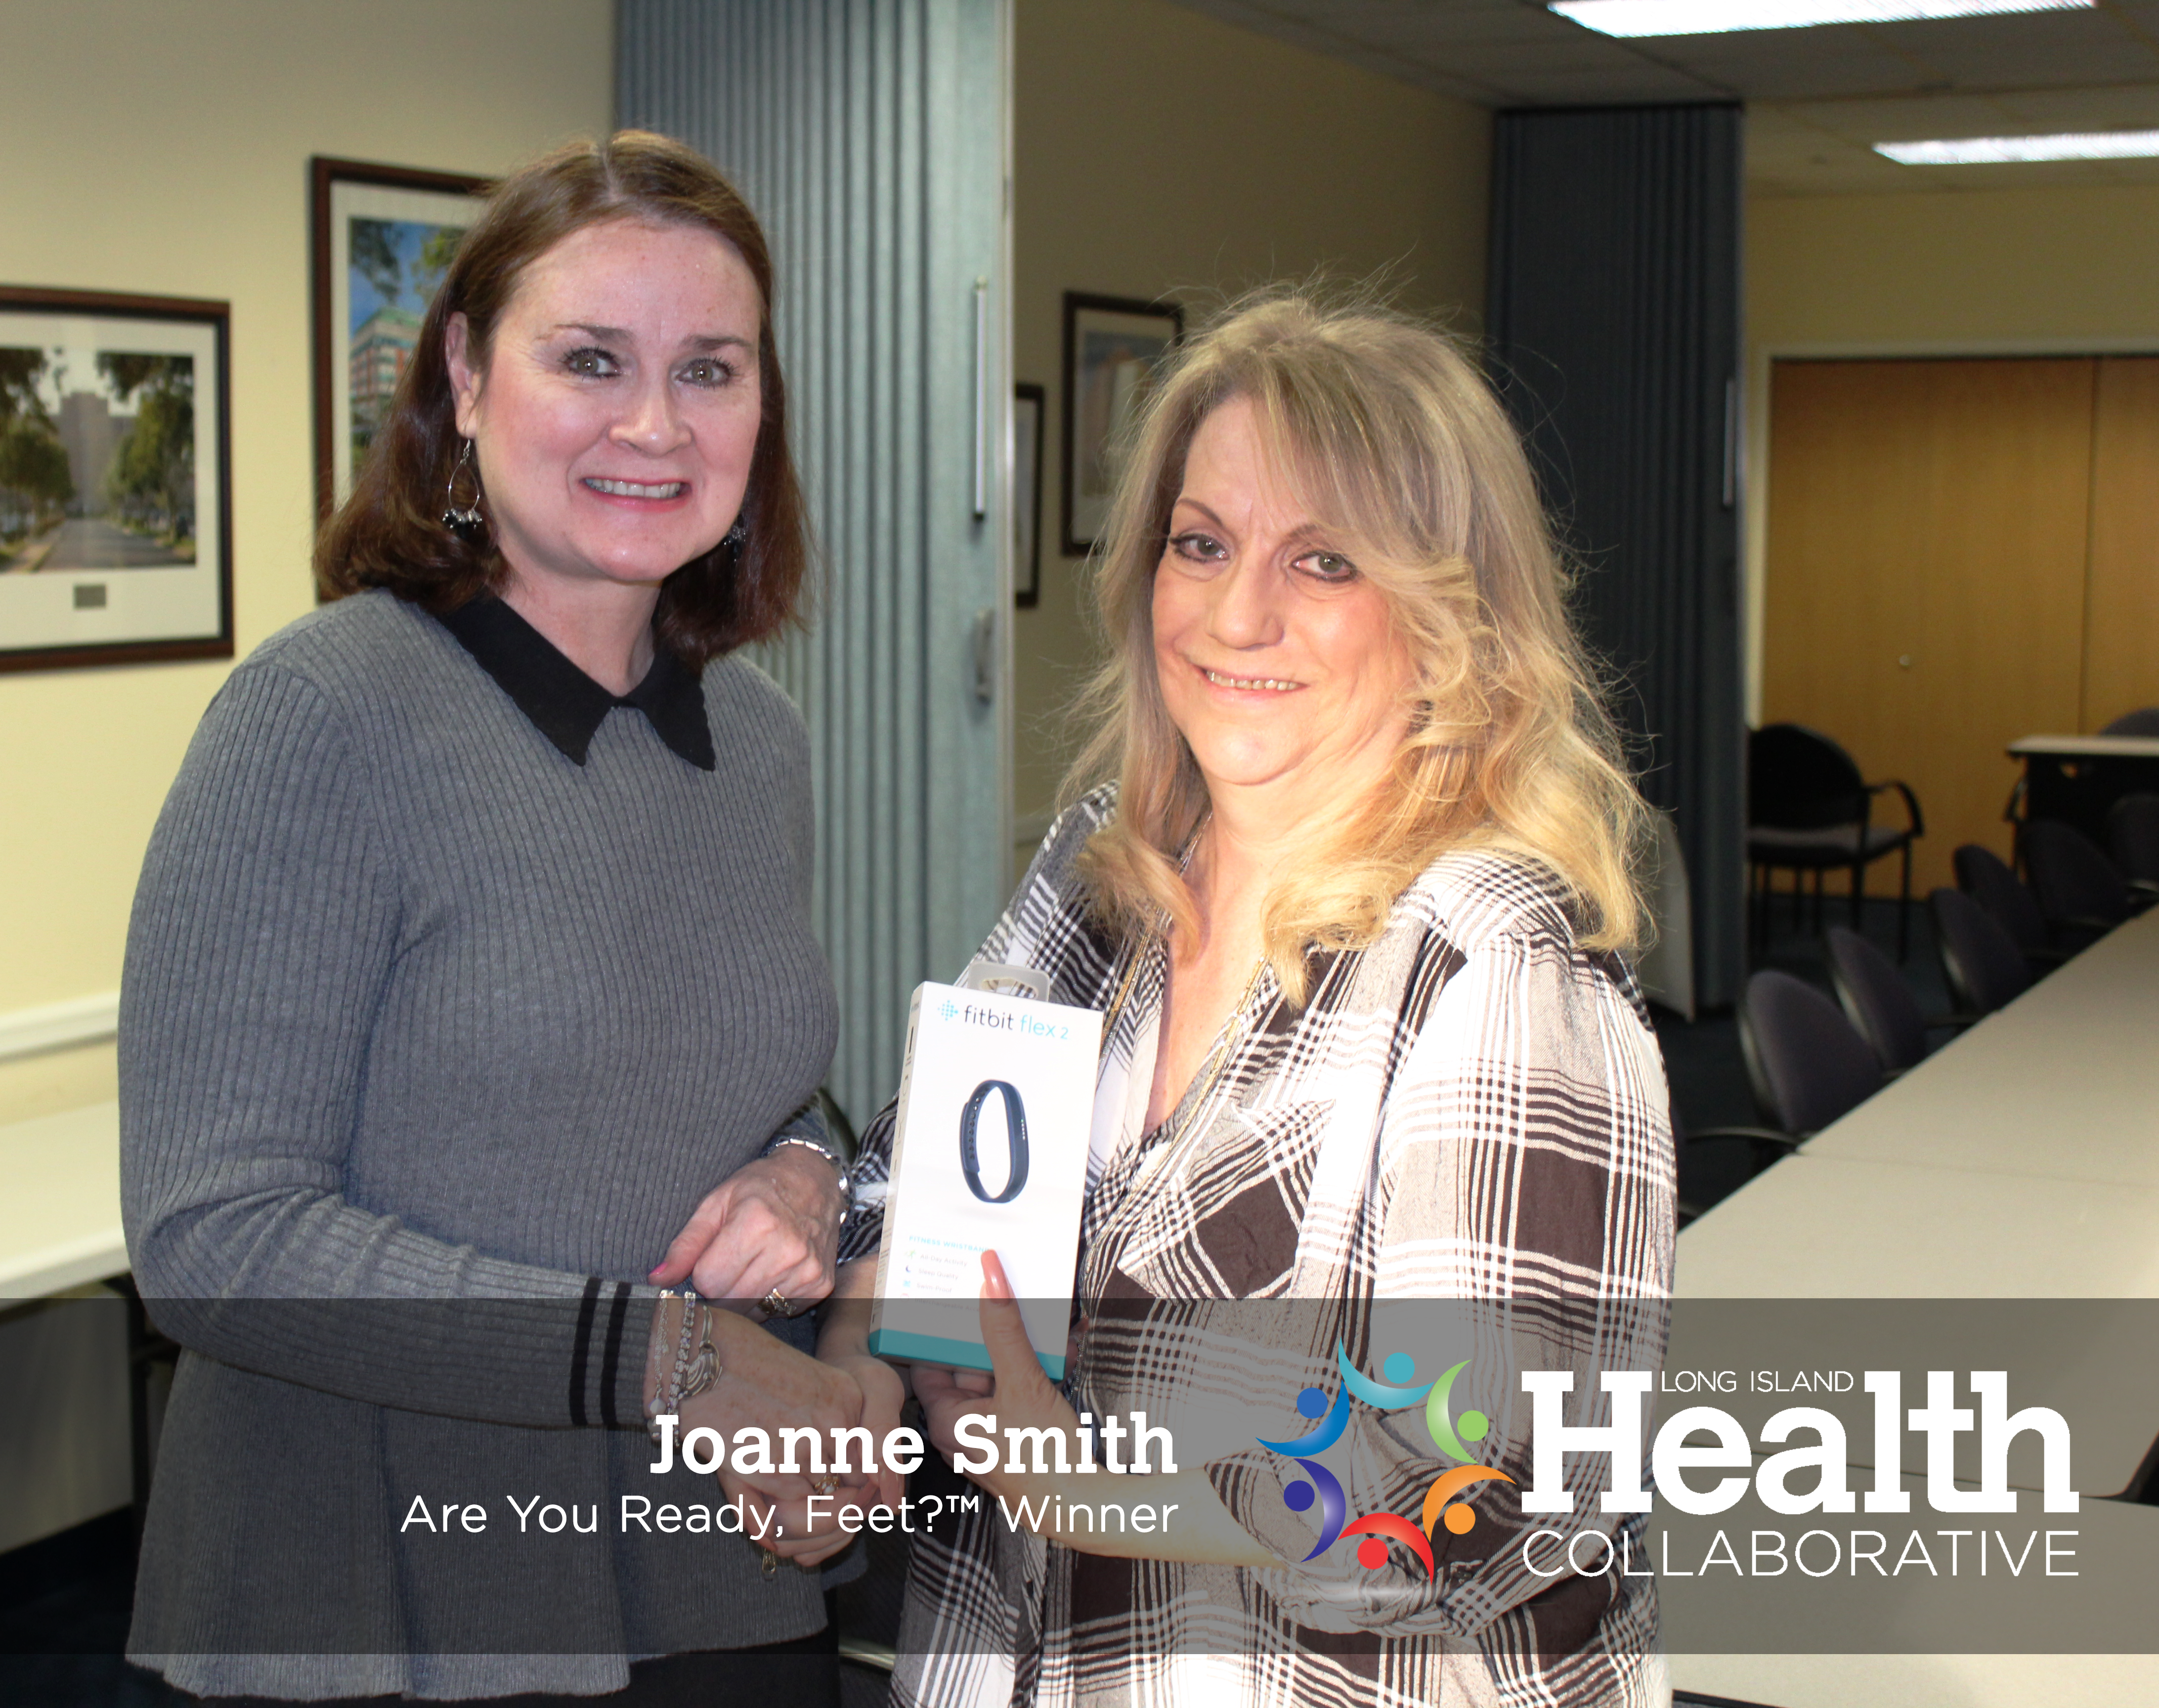 Joanne Smith, winner of the Are You Ready, Feet? prize